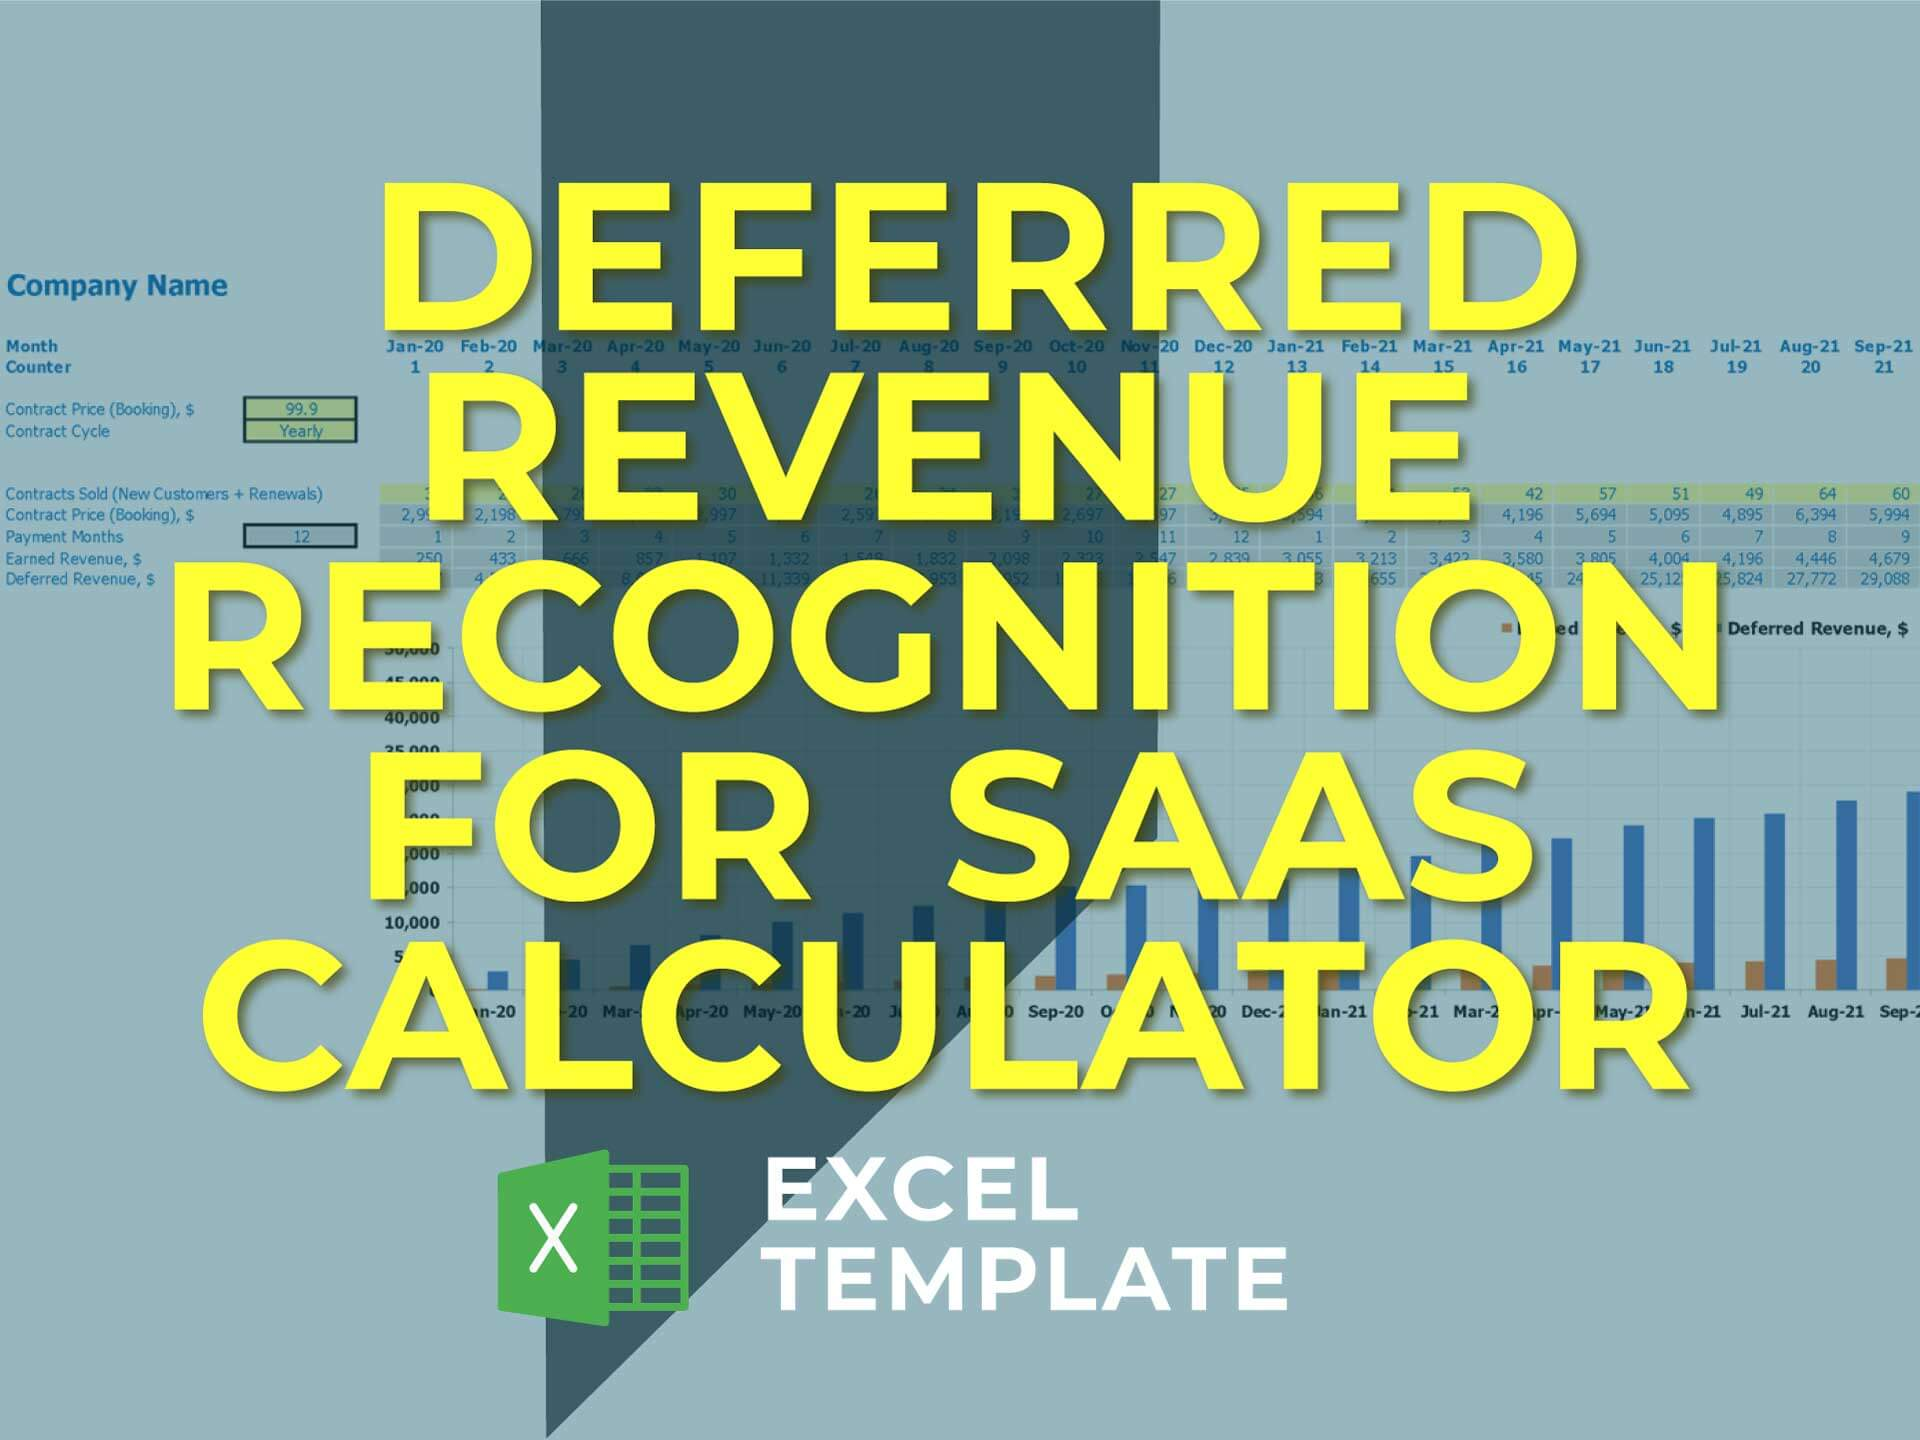 Deferred Revenue Recognition For Saas Calculator